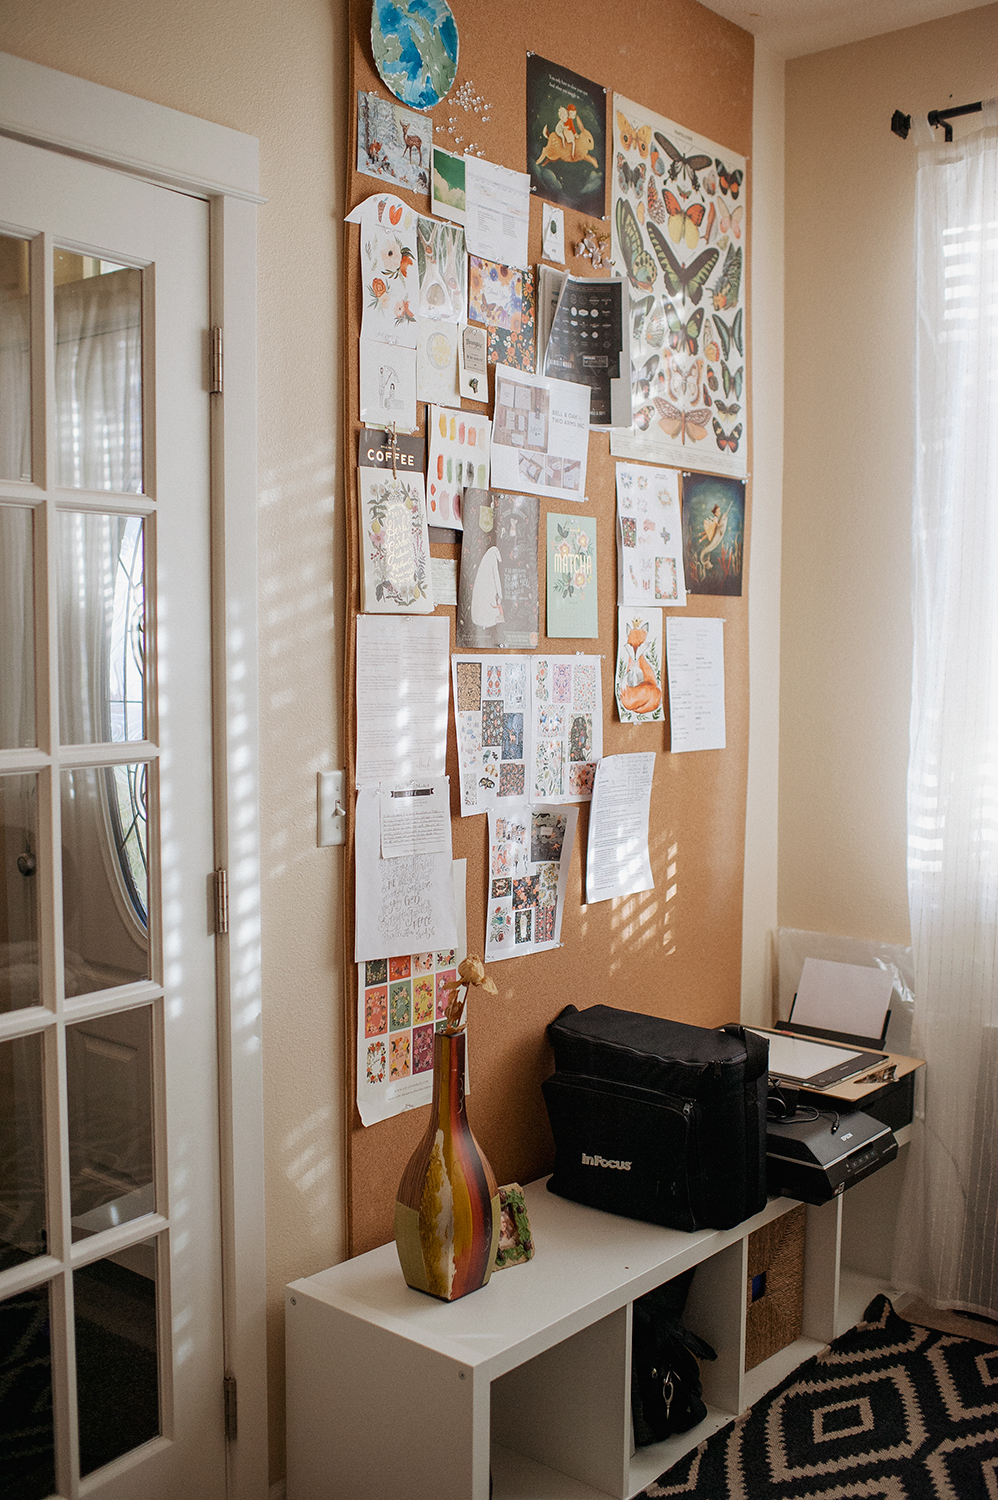 How To Install Your Own Cork Board Wall Area Elena Wilken